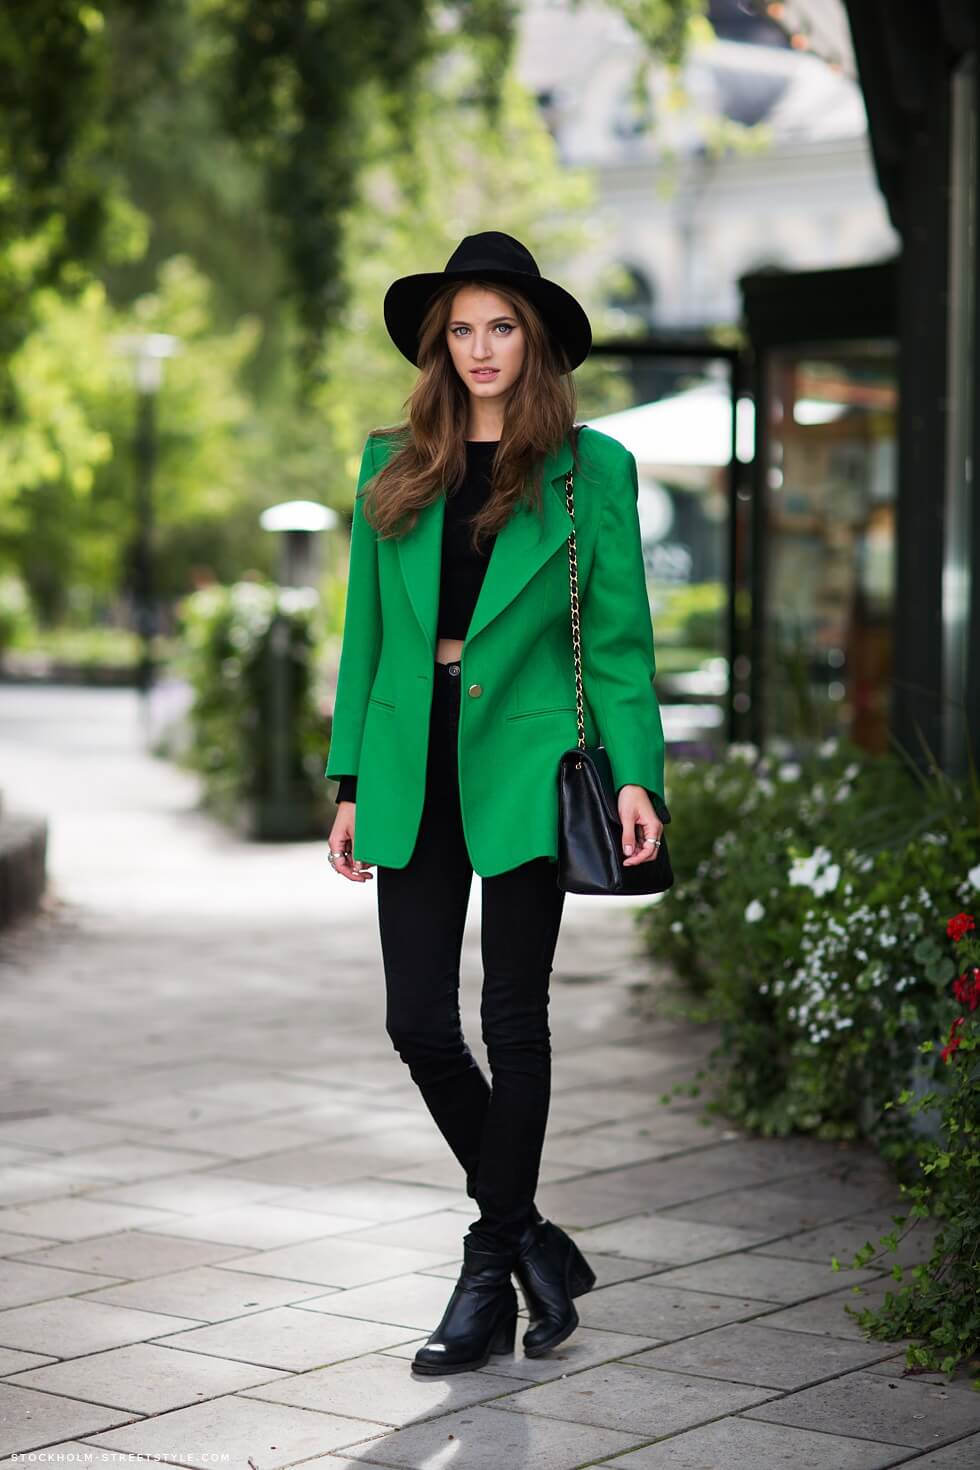 07 - tumblr - green blazer stylish st patricks outfit ideas